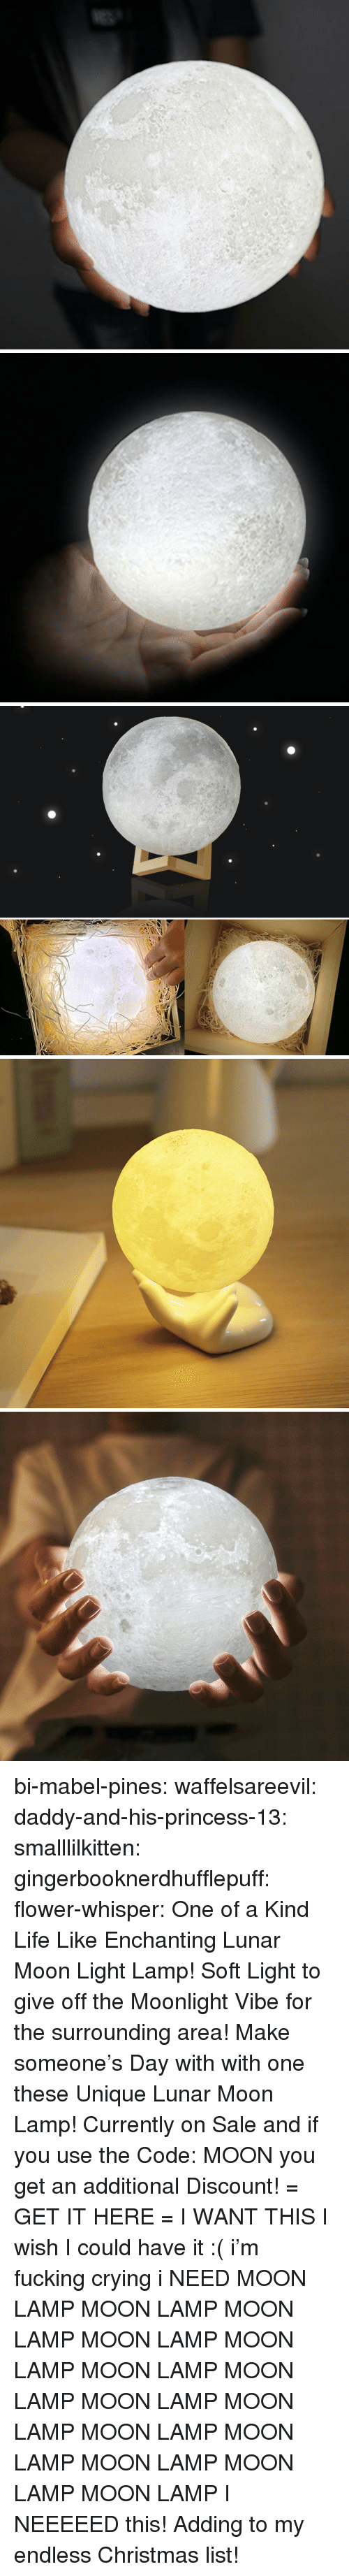 Christmas, Crying, and Fucking: bi-mabel-pines:  waffelsareevil:  daddy-and-his-princess-13: smalllilkitten:   gingerbooknerdhufflepuff:   flower-whisper:  One of a Kind Life Like Enchanting Lunar Moon Light Lamp! Soft Light to give off the Moonlight Vibe for the surrounding area! Make someone's Day with with one these Unique Lunar Moon Lamp! Currently on Sale and if you use the Code: MOON you get an additional Discount! = GET IT HERE =   I WANT THIS   I wish I could have it :(   i'm fucking crying i NEED   MOON LAMP MOON LAMP MOON LAMP MOON LAMP MOON LAMP MOON LAMP MOON LAMP MOON LAMP MOON LAMP MOON LAMP MOON LAMP MOON LAMP MOON LAMP MOON LAMP  I NEEEEED this! Adding to my endless Christmas list!